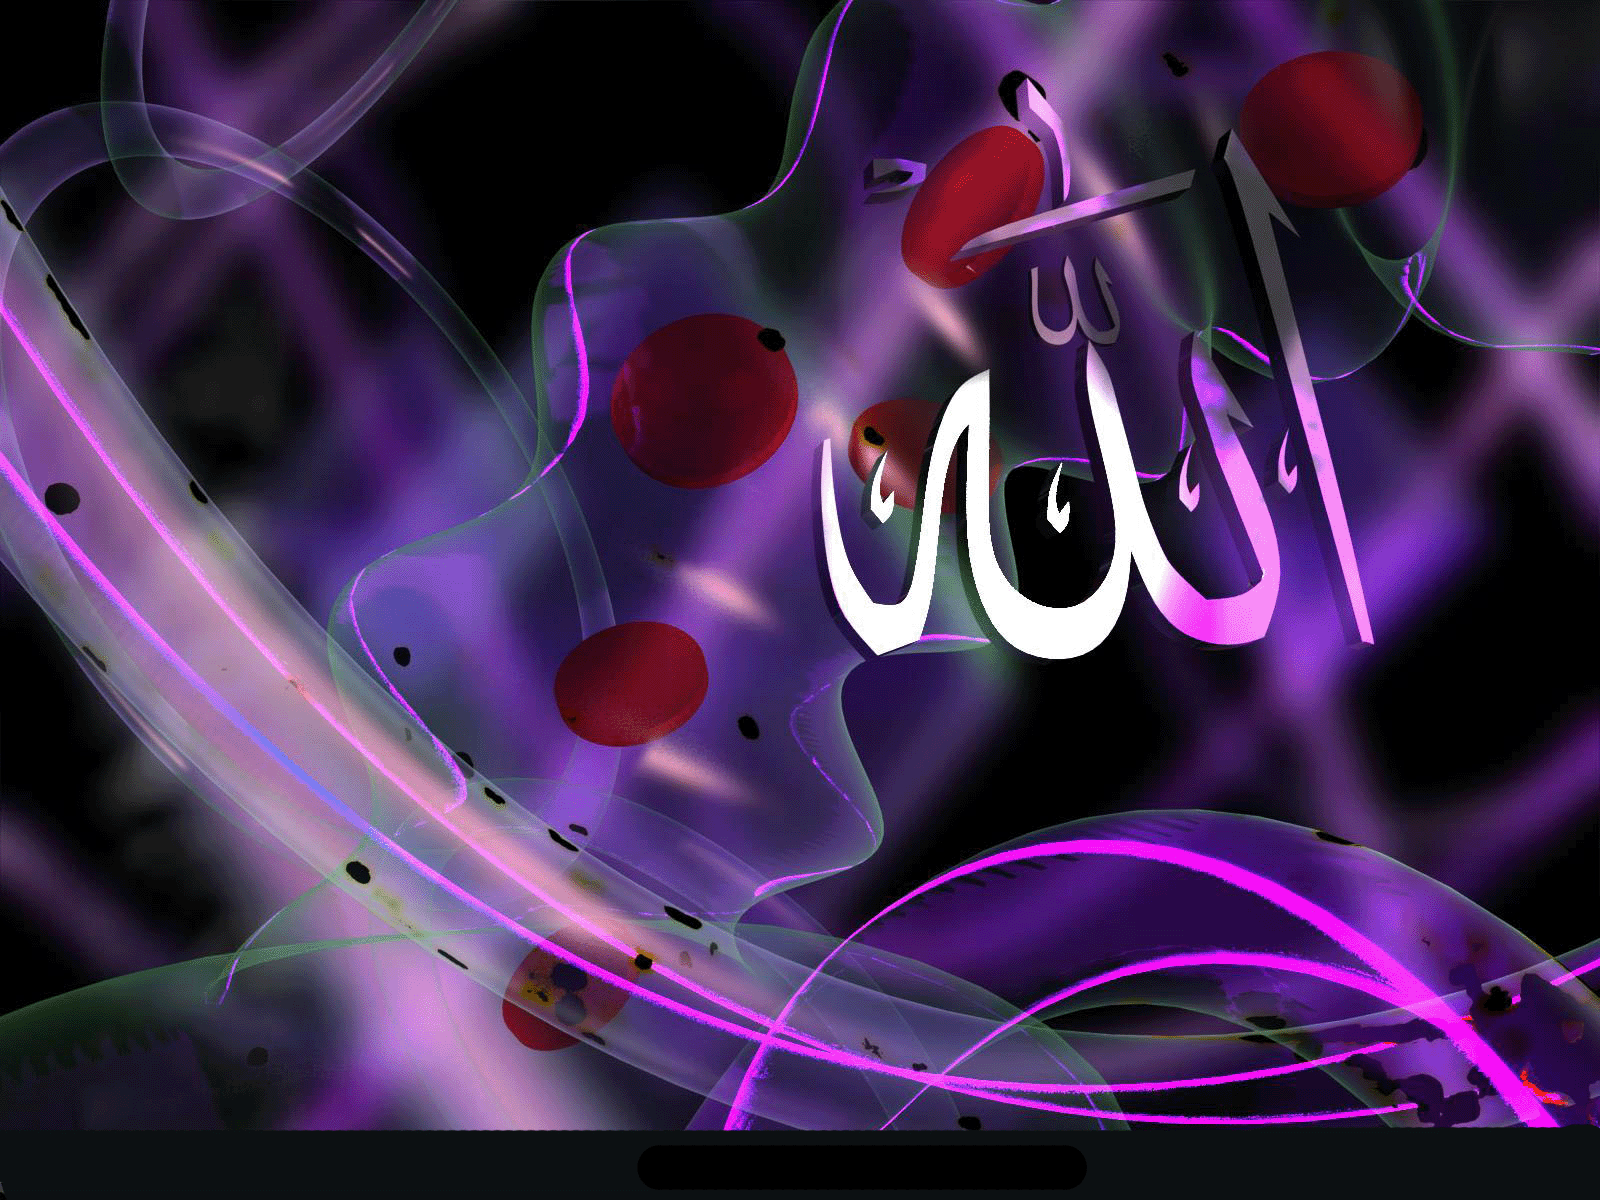 Allah Name Wallpapers 2015 - Wallpaper cave